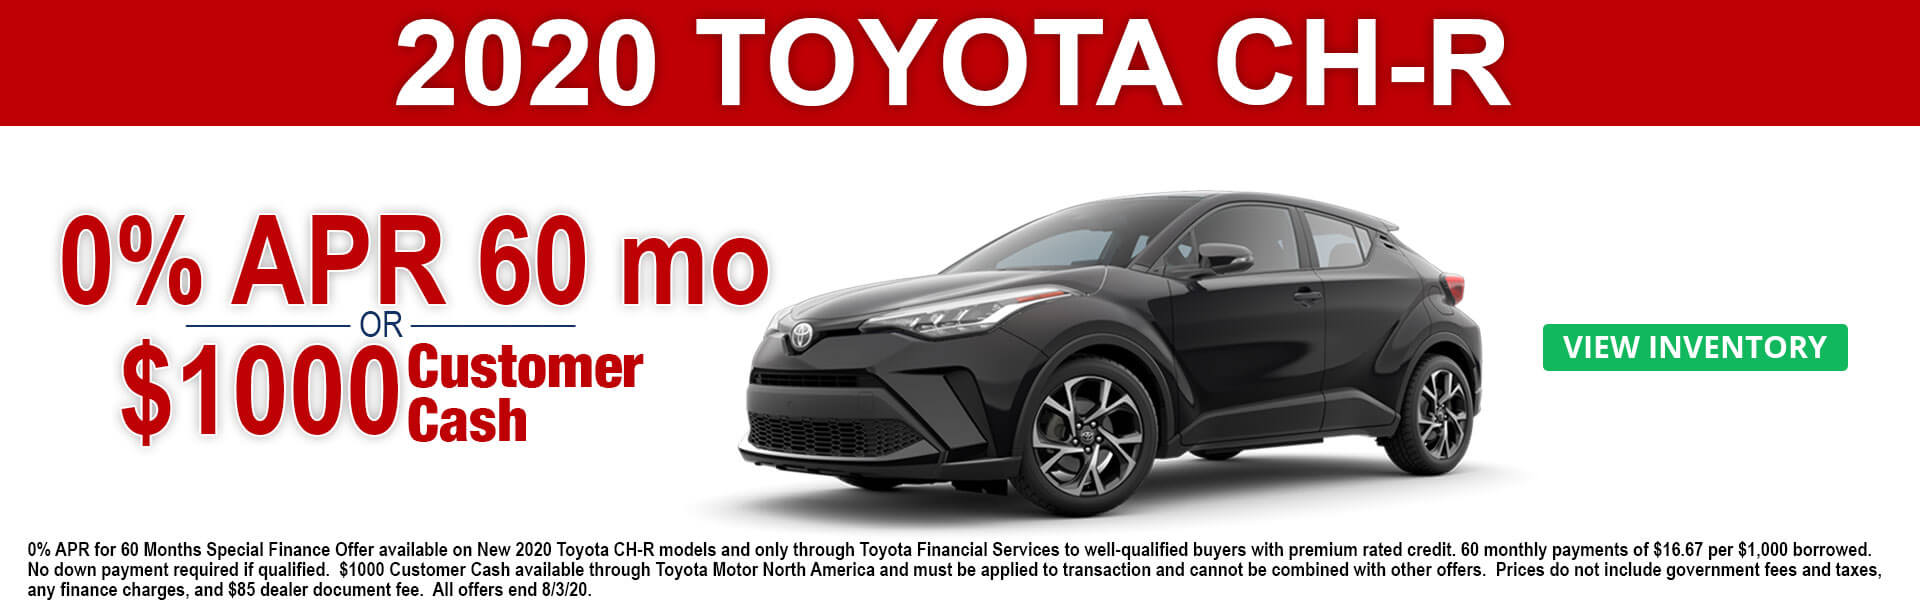 2020 Toyota CH-R Cash and APR offer